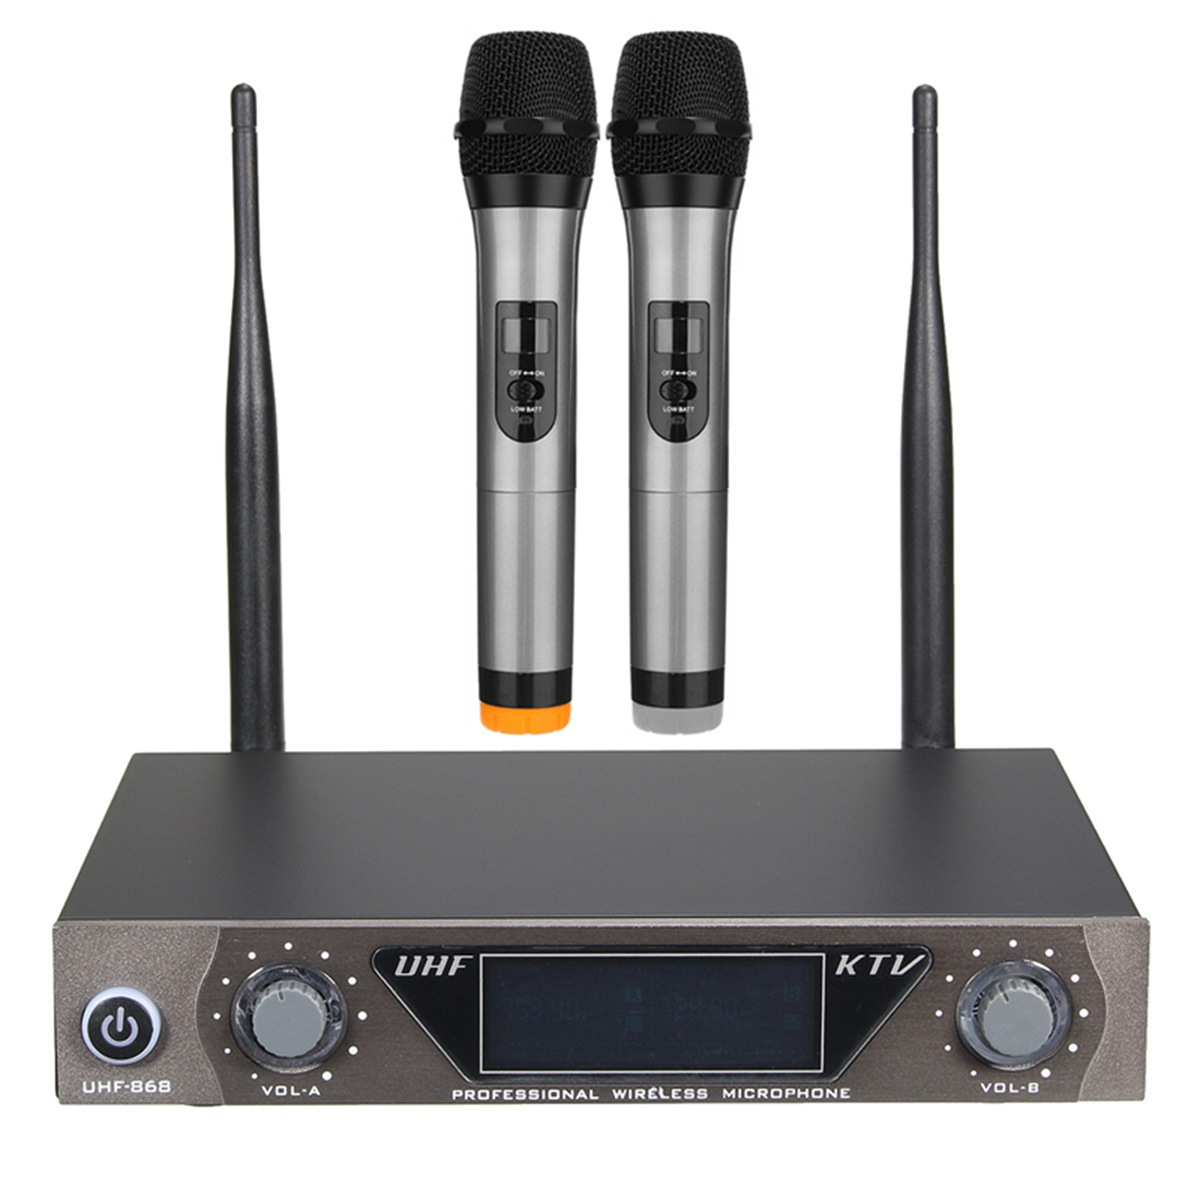 LEORY UHF Karaoke Wireless Microphone System With 2 Handheld Mic Dual Channel UHF Transmitter Microphone Systerm For Karaoke free shipping professional uhf bx288 p 58 karaoke wireless microphone system with dual handheld microphone cardioid transmitter